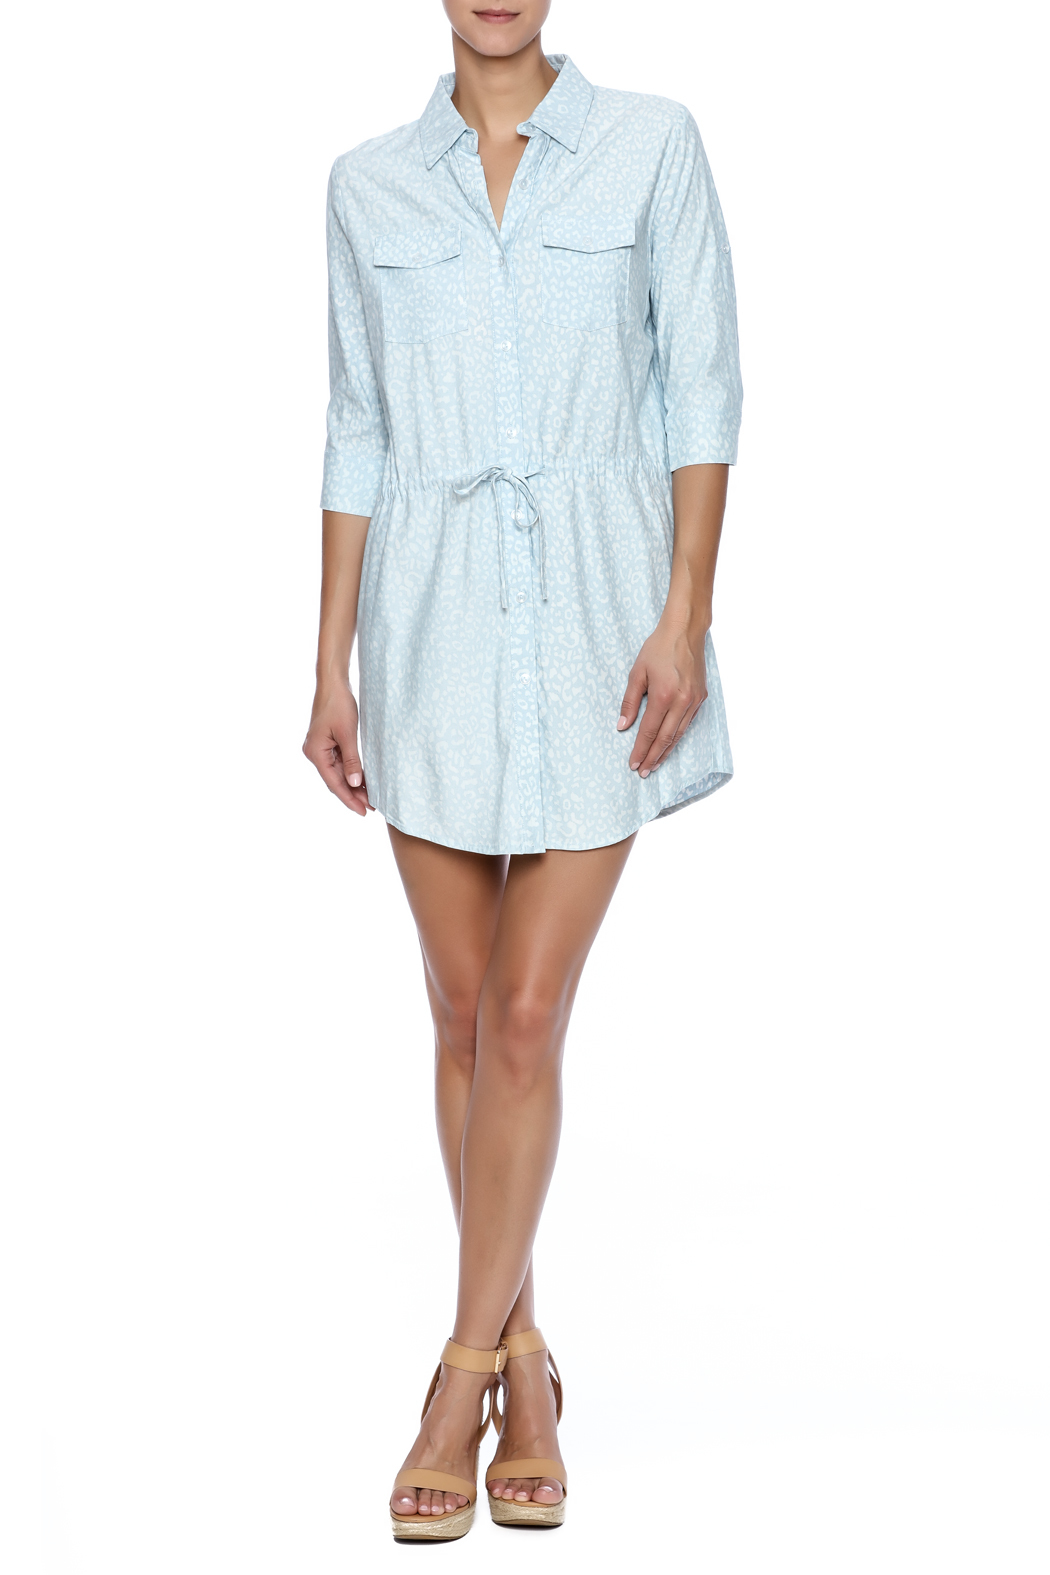 Buddy Love Orlando Shirt Dress - Front Full Image